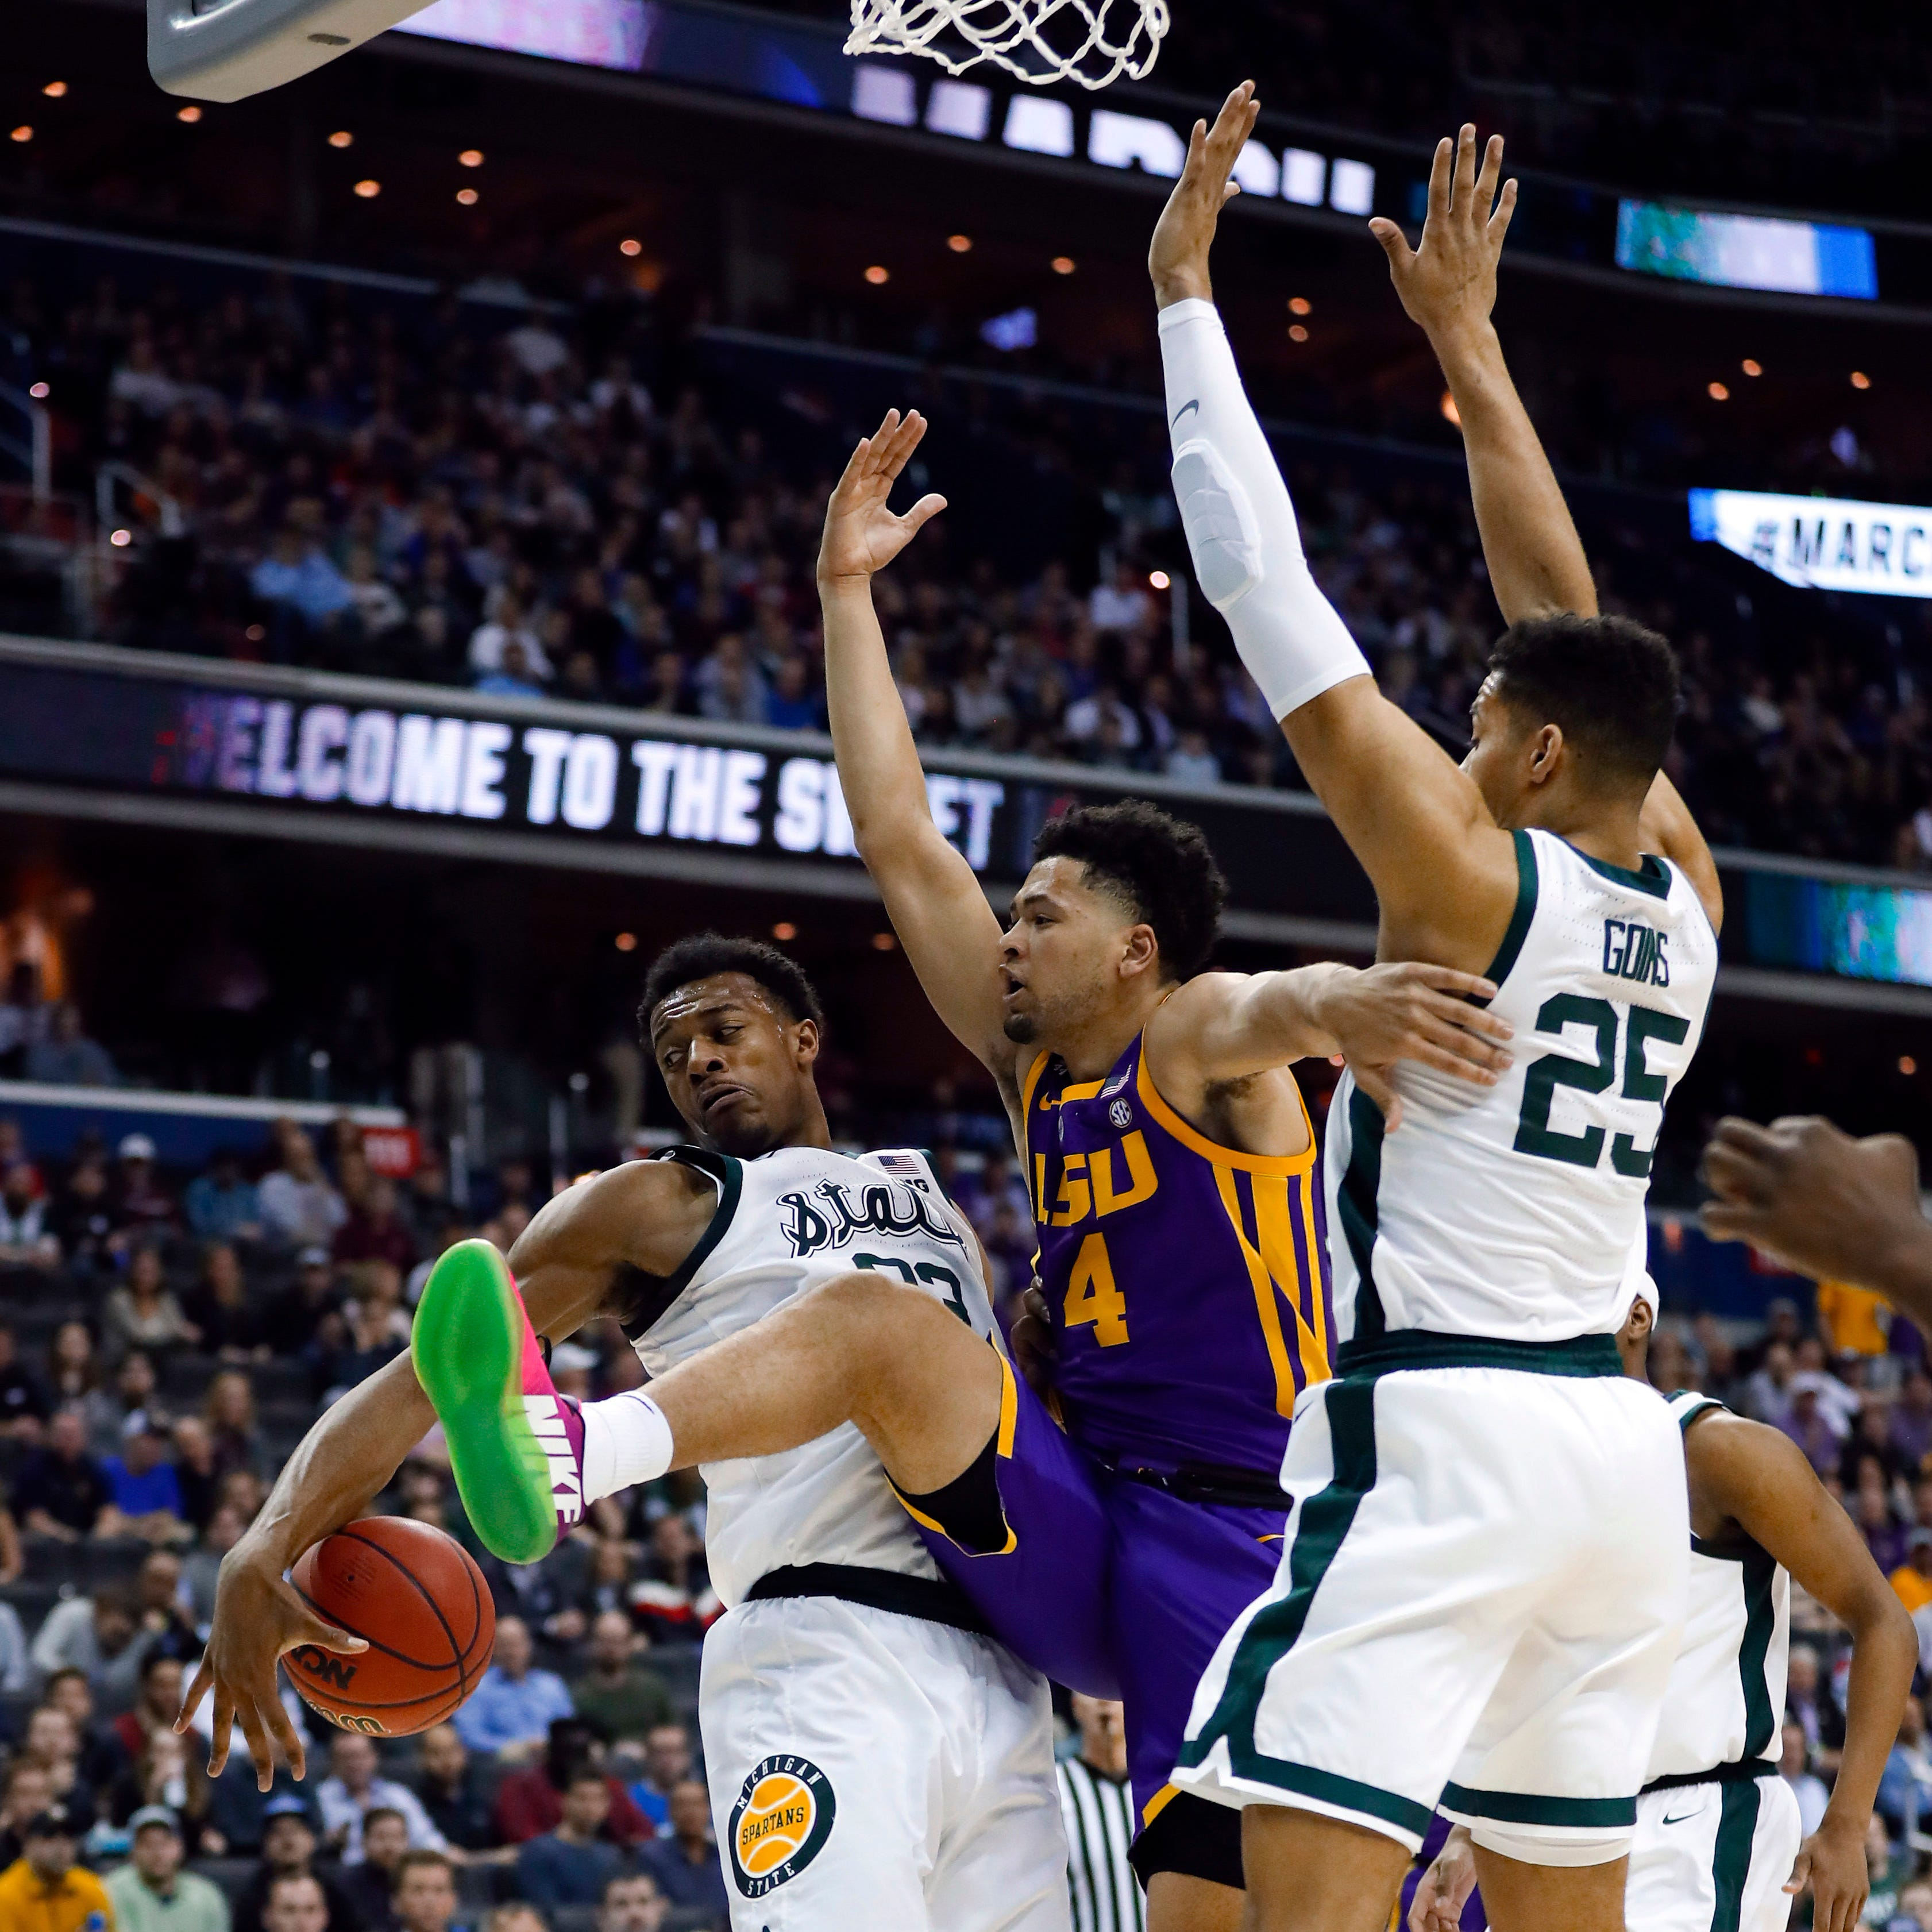 Recap: Michigan State smothers LSU, 80-63, in Sweet 16 matchup